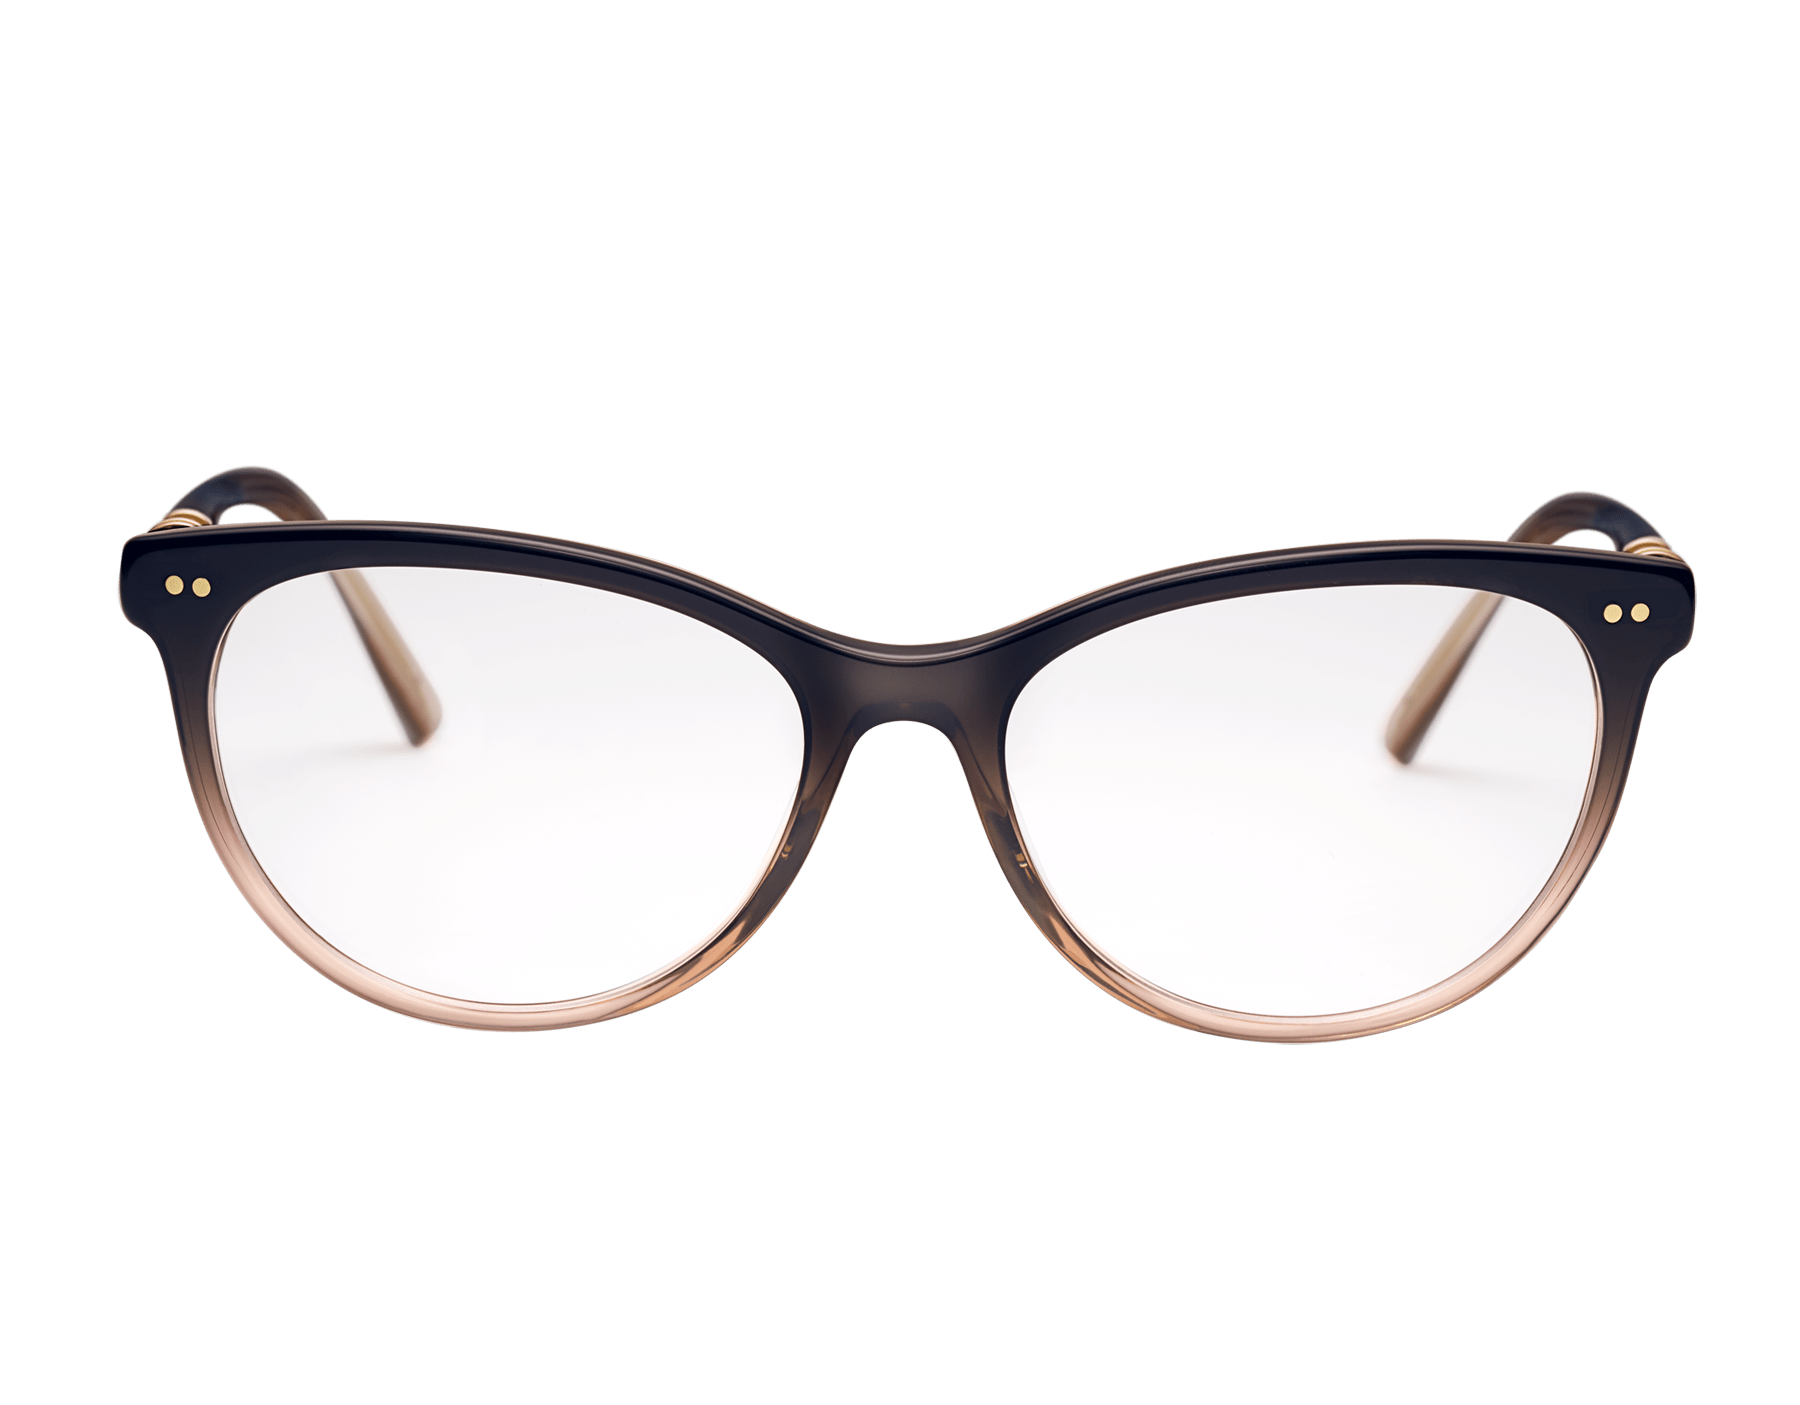 B.zero1 rounded cat-eye acetate optical glasses with metal décor 903809 image 2